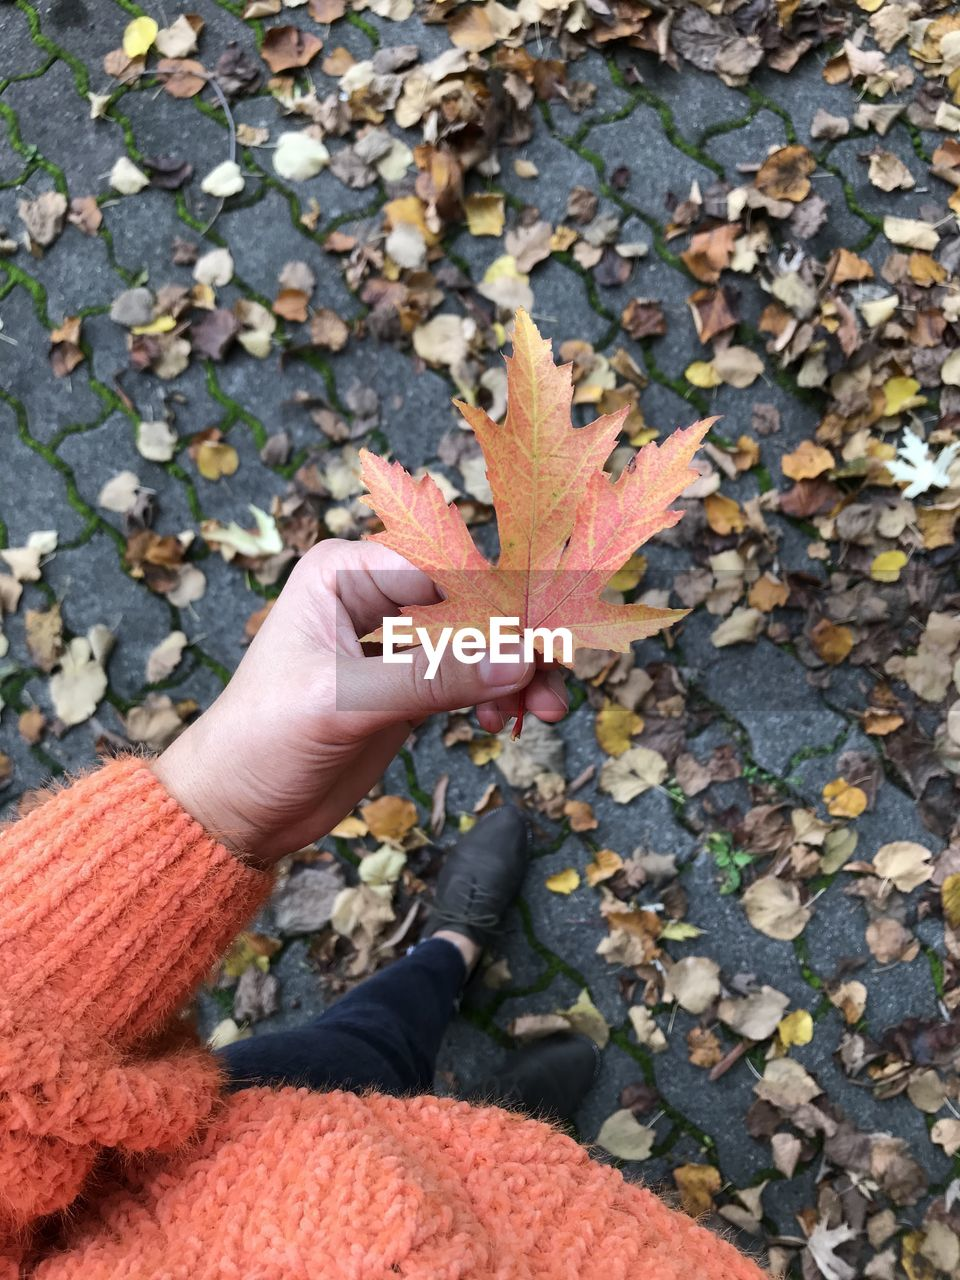 autumn, one person, plant part, human hand, leaf, change, hand, human body part, personal perspective, real people, body part, unrecognizable person, orange color, day, holding, nature, maple leaf, lifestyles, high angle view, leisure activity, finger, outdoors, leaves, autumn collection, human limb, natural condition